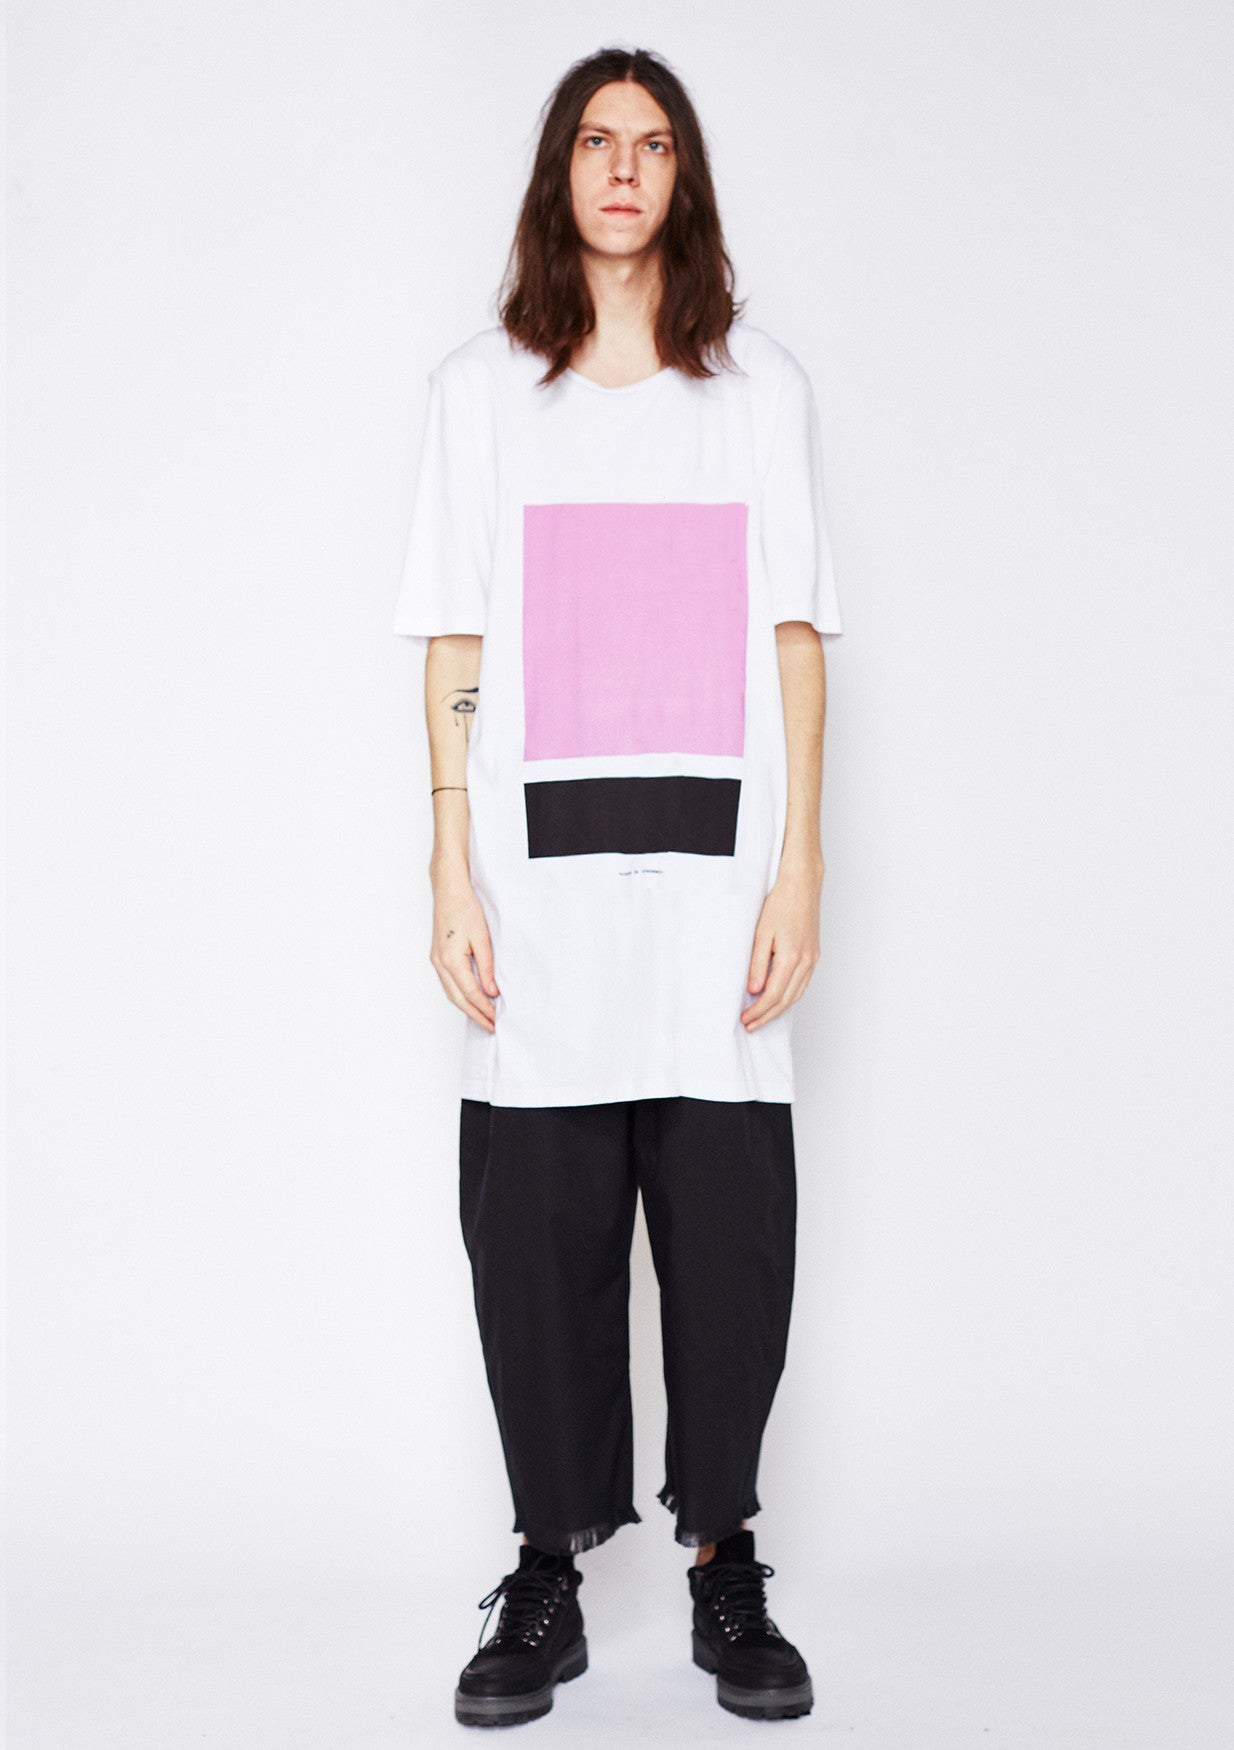 Split box Tee - Black, Pink